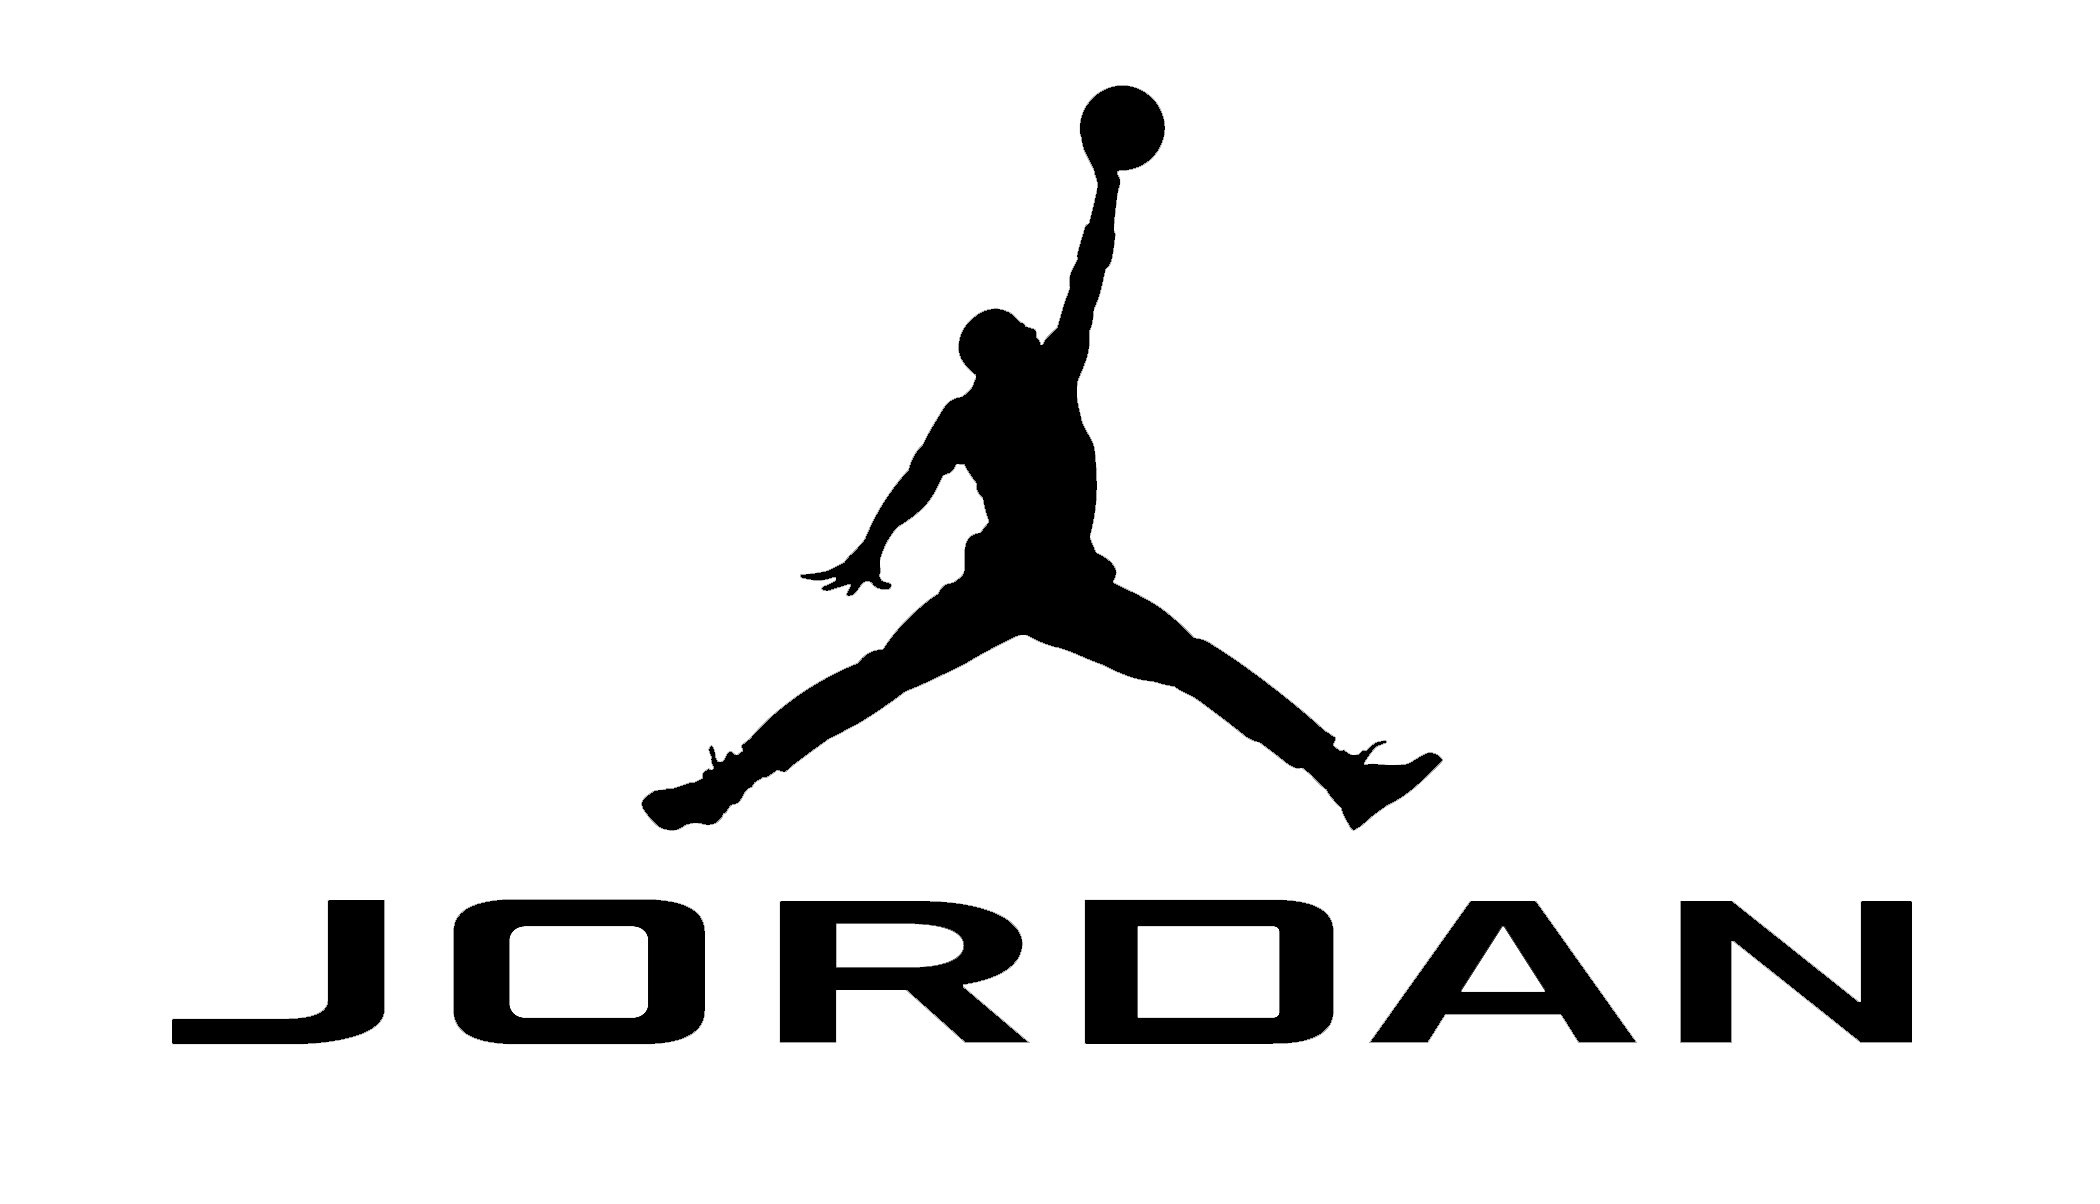 Nike Air Jordan Wallpapers 69 Background Pictures